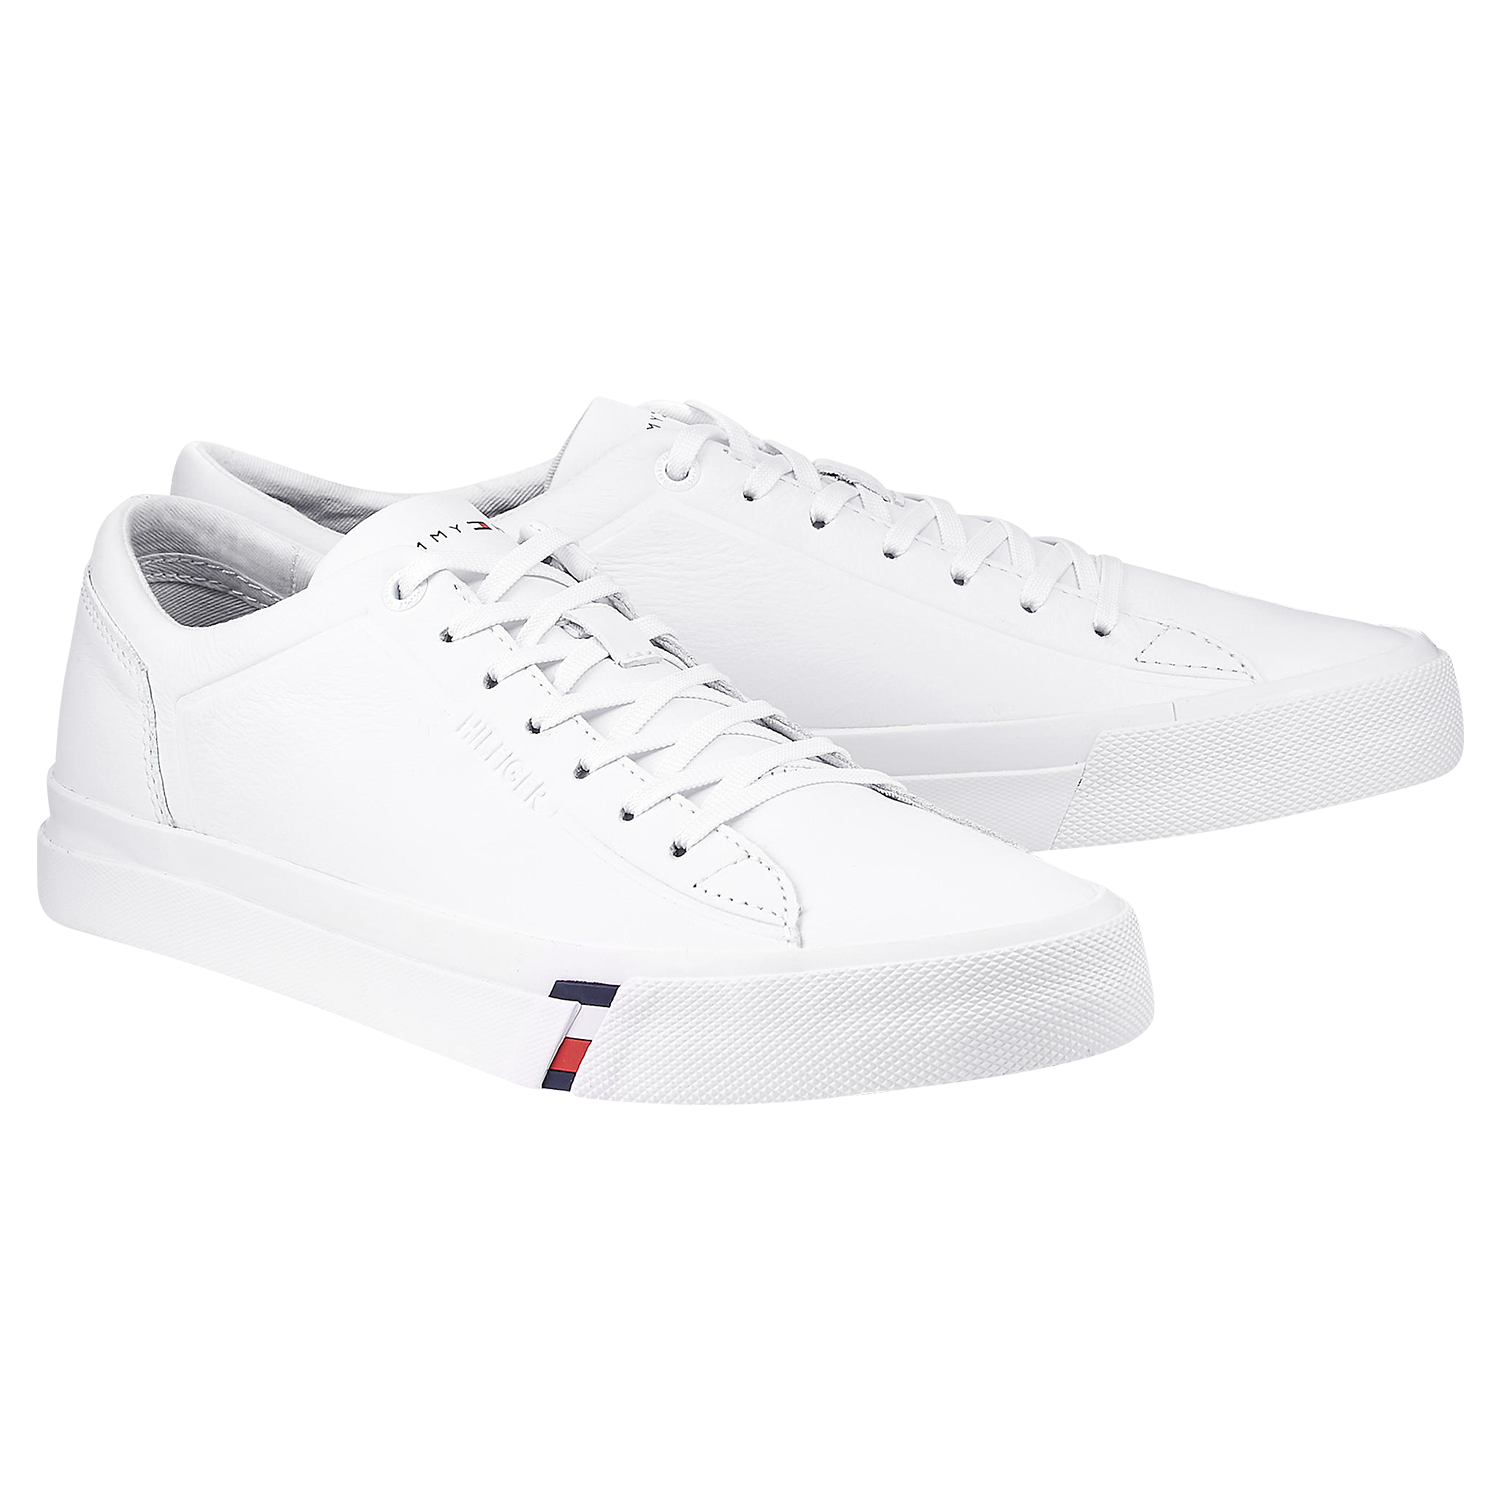 TOMMY HILFIGER Sneaker Low 'METALLIC CITY' in silber | ABOUT YOU